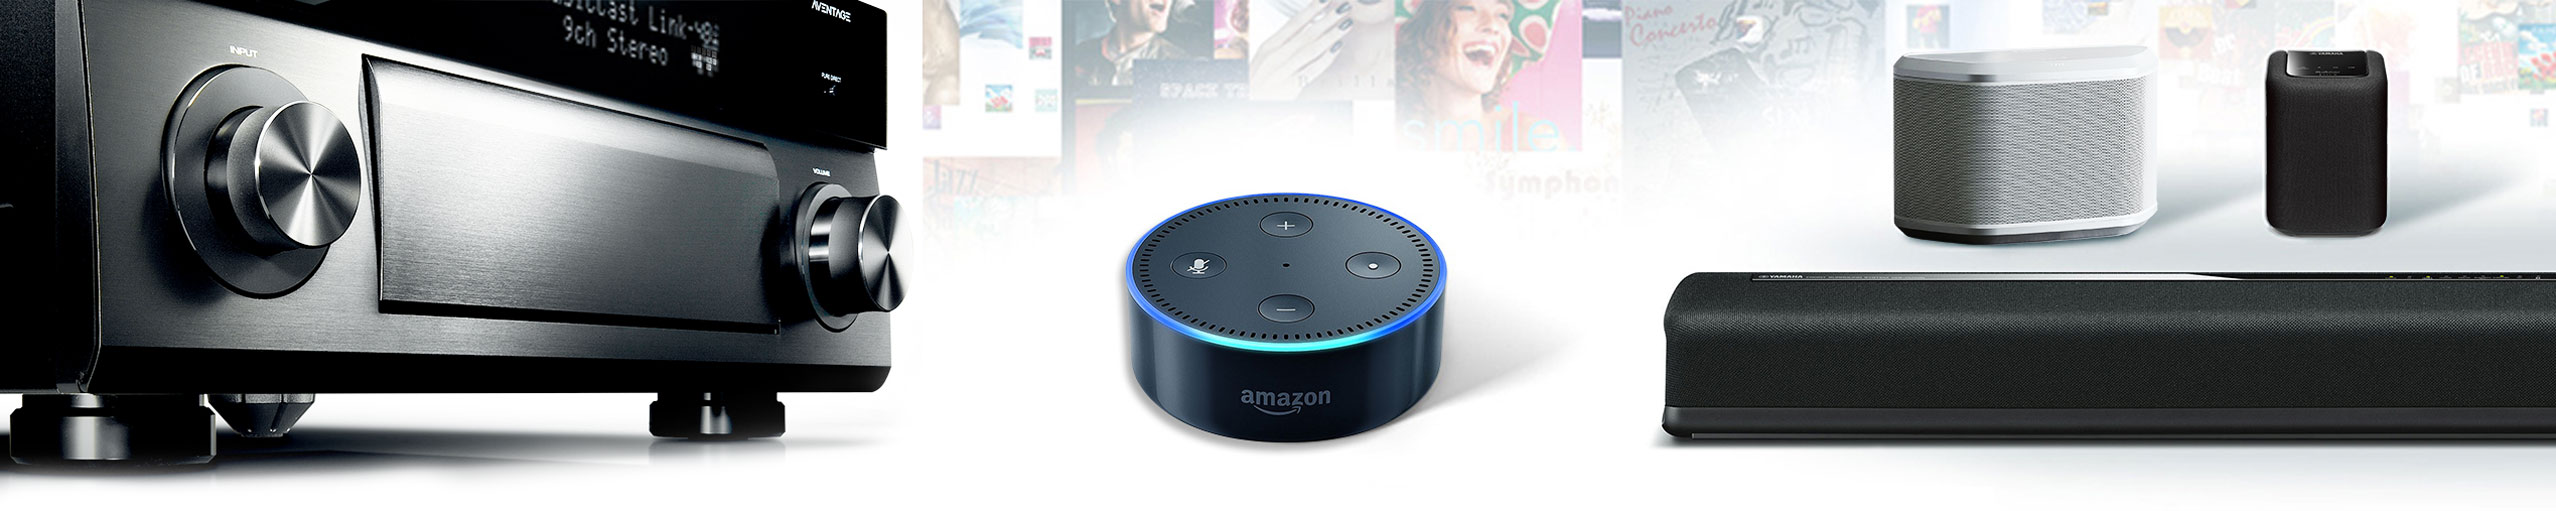 amazon-alexa-hero-image